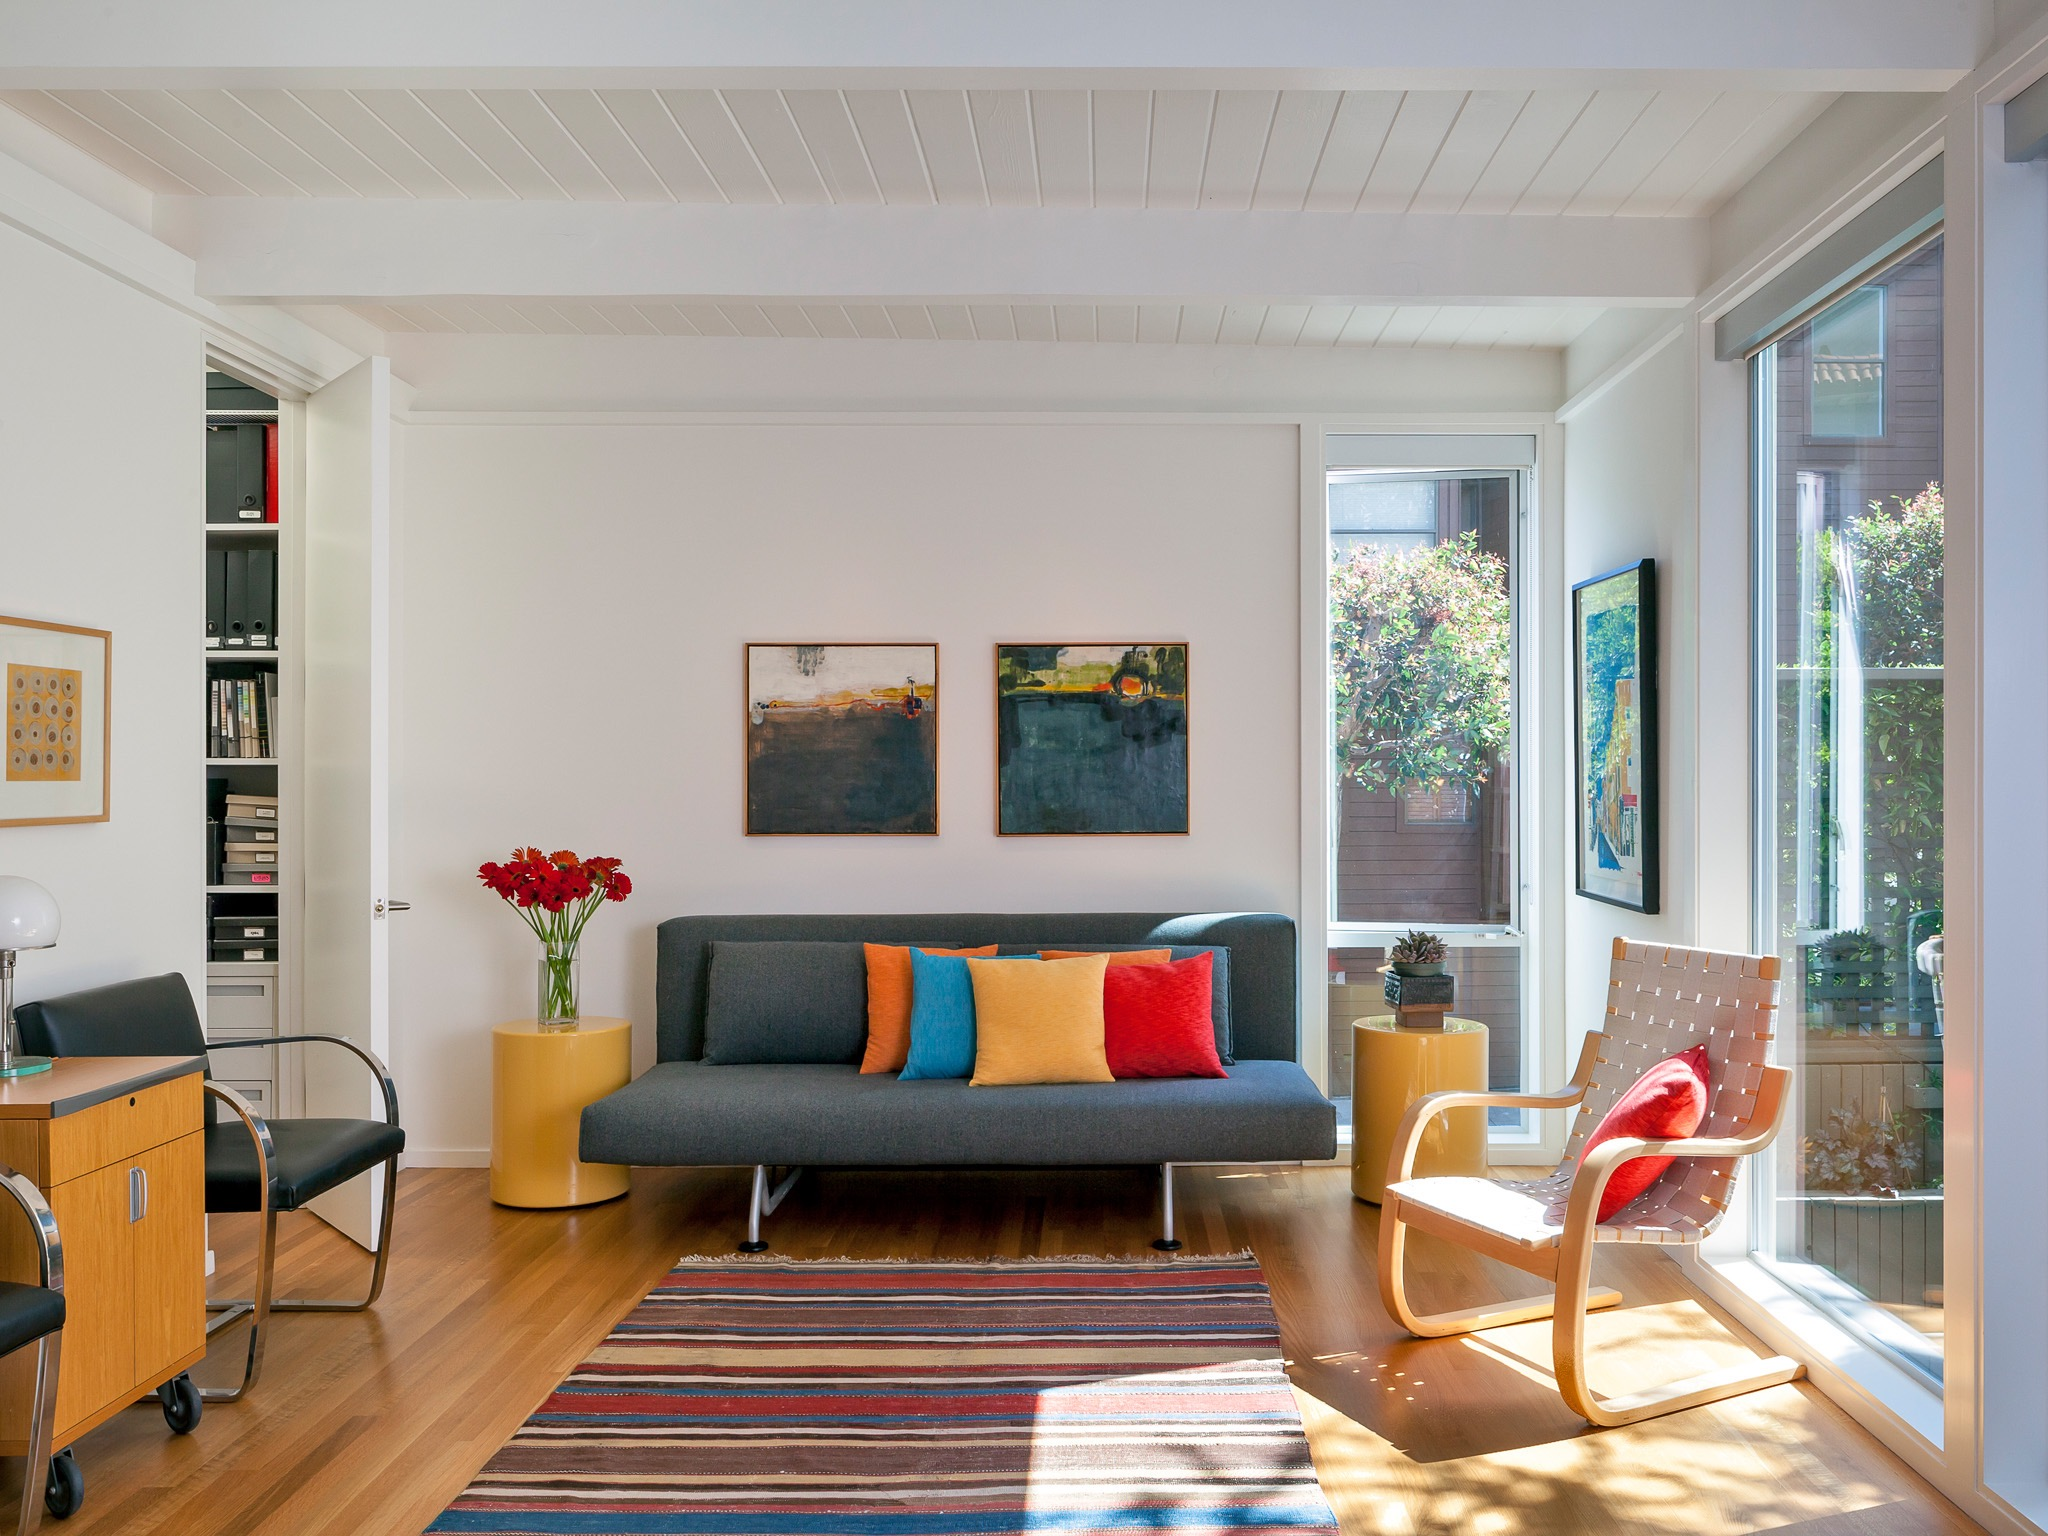 Narrow Living Room With Large Glass Windows And Colorful Throw Pillows (Image 12 of 22)